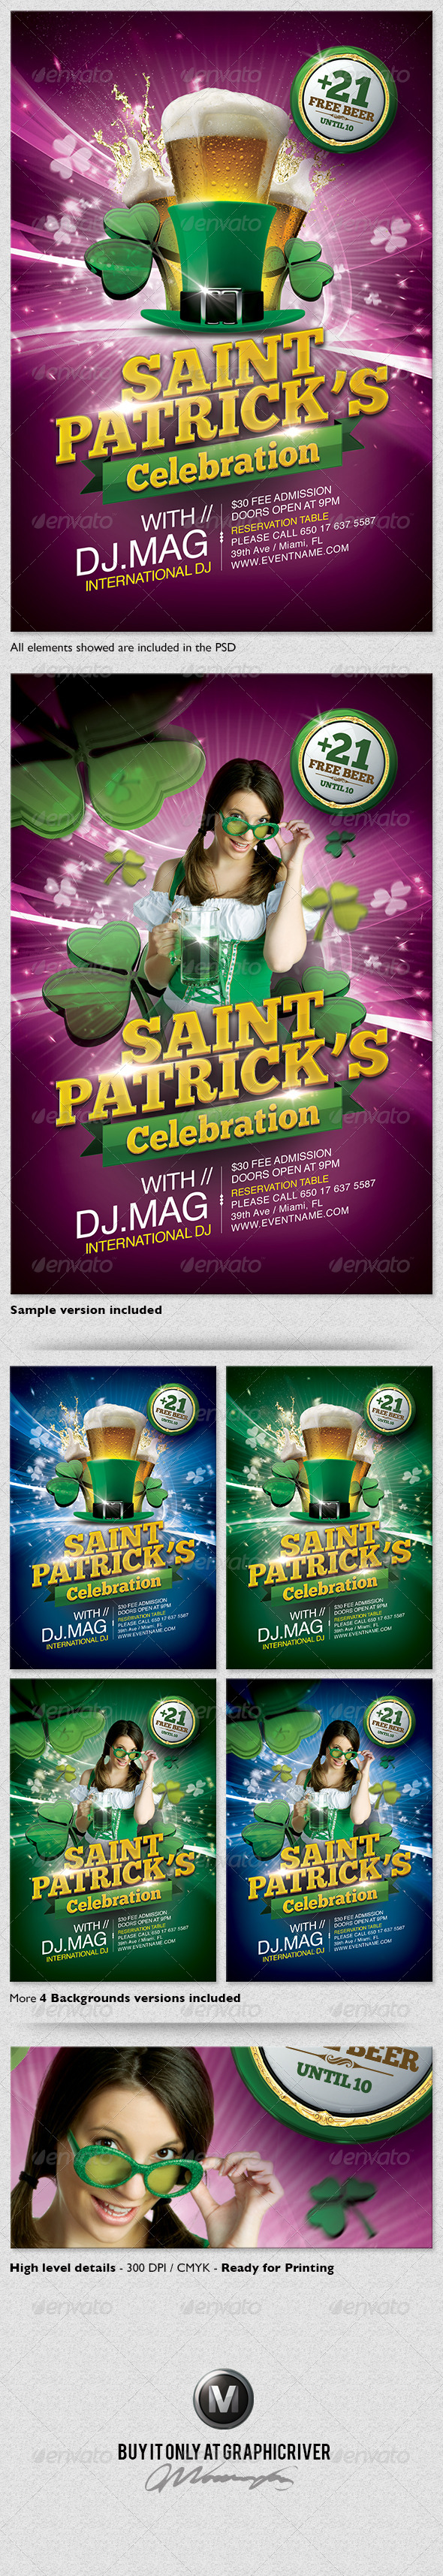 St Patrick s Day Flyer Template